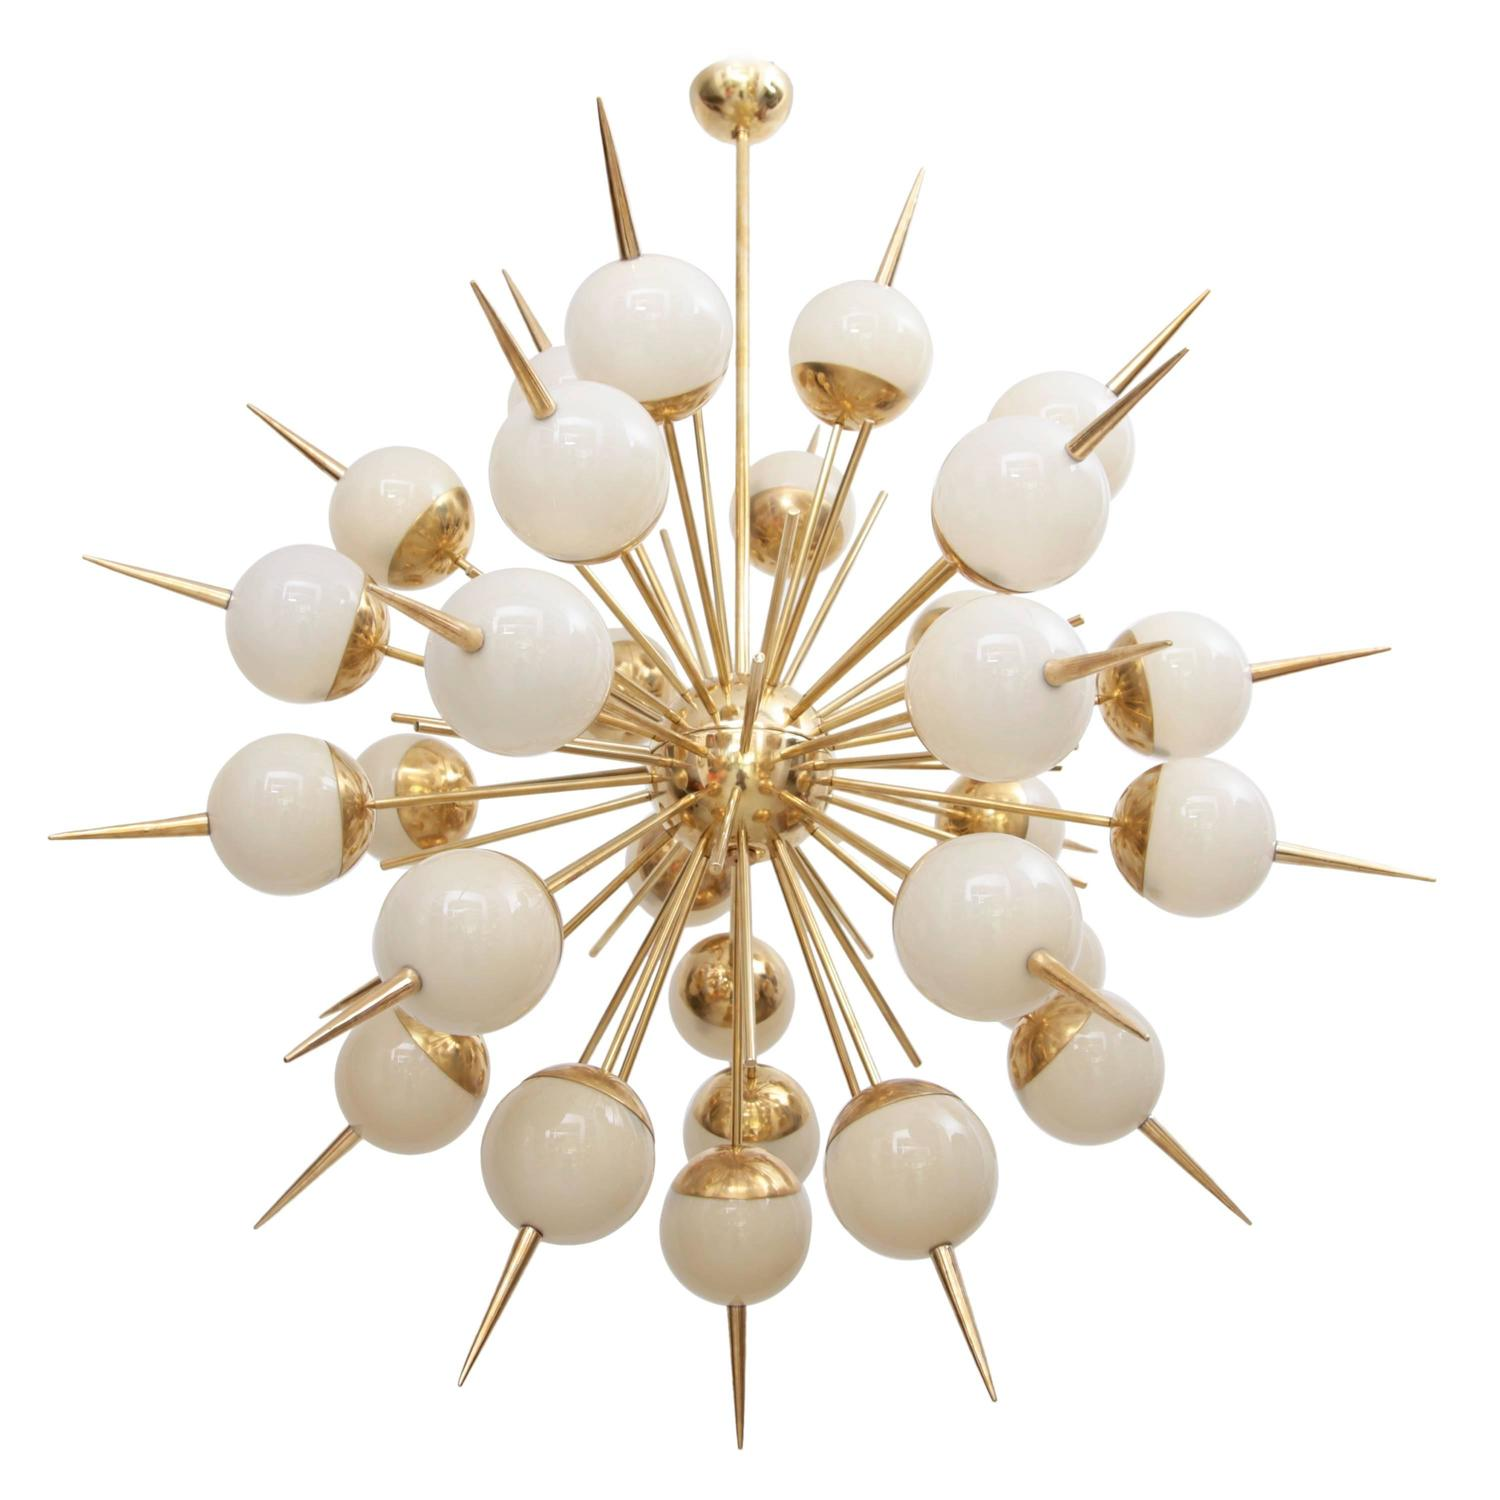 "Grigio Perla"" Murano Glass Sphere Chandelier For Sale at 1stdibs"